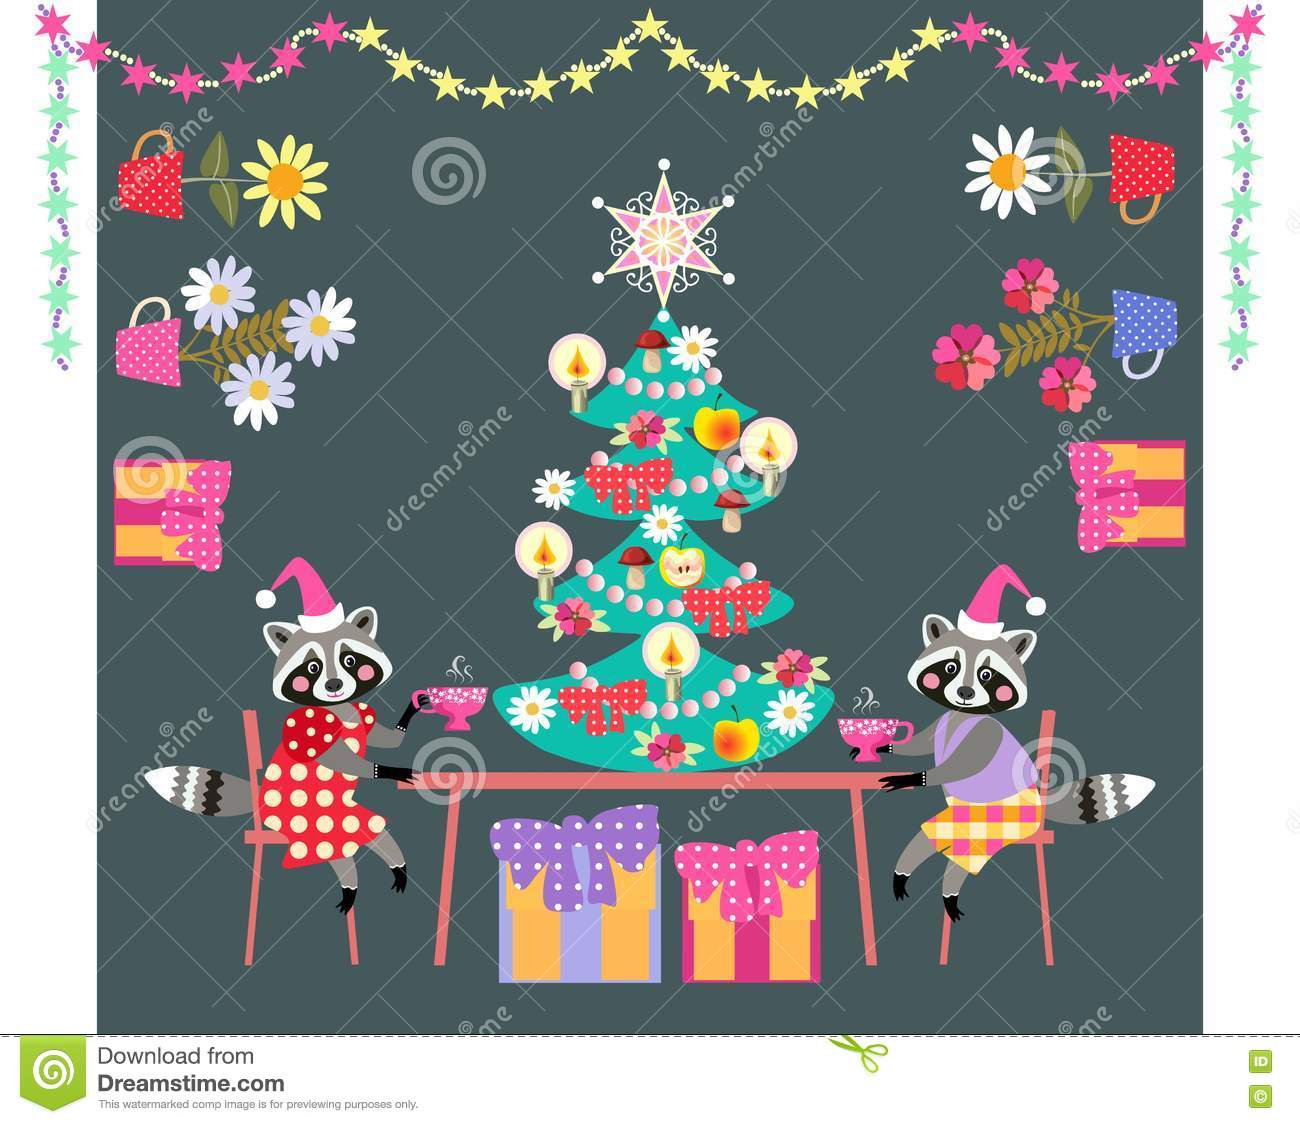 Merry Christmas! Cute Raccoons Drinking Tea. Stock Vector.